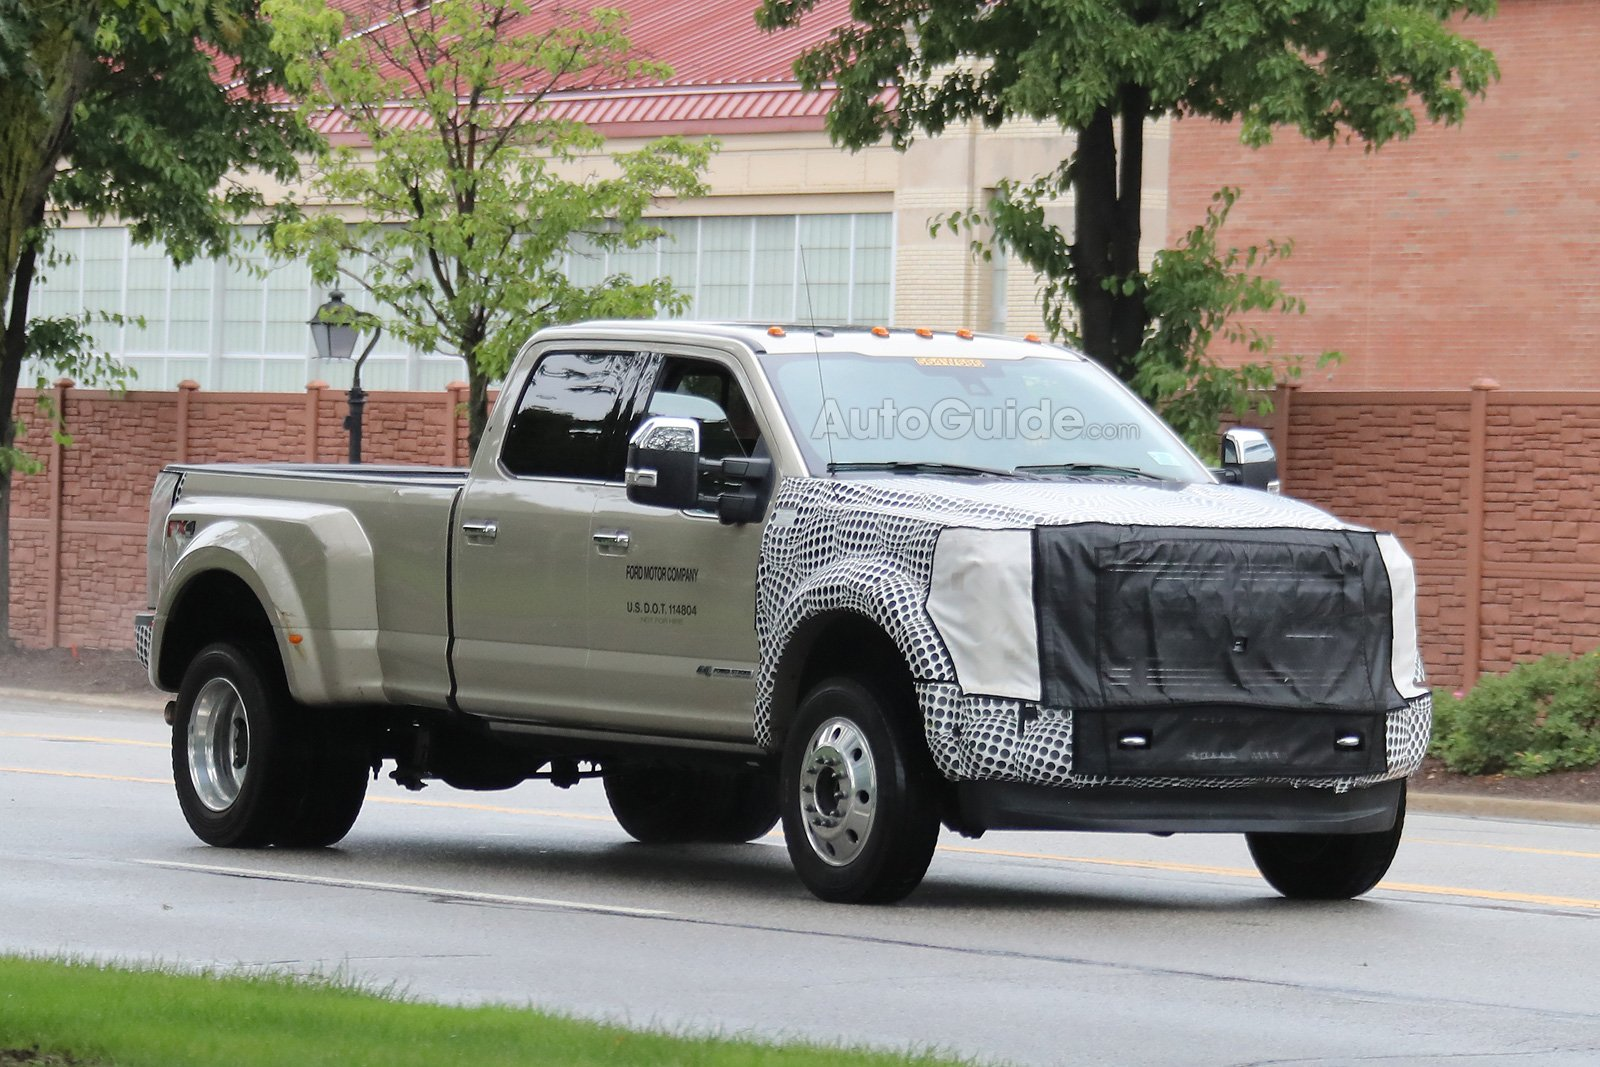 F150 Next To F250 >> 2019 Ford F-450 Super Duty Spied Testing in Michigan » AutoGuide.com News